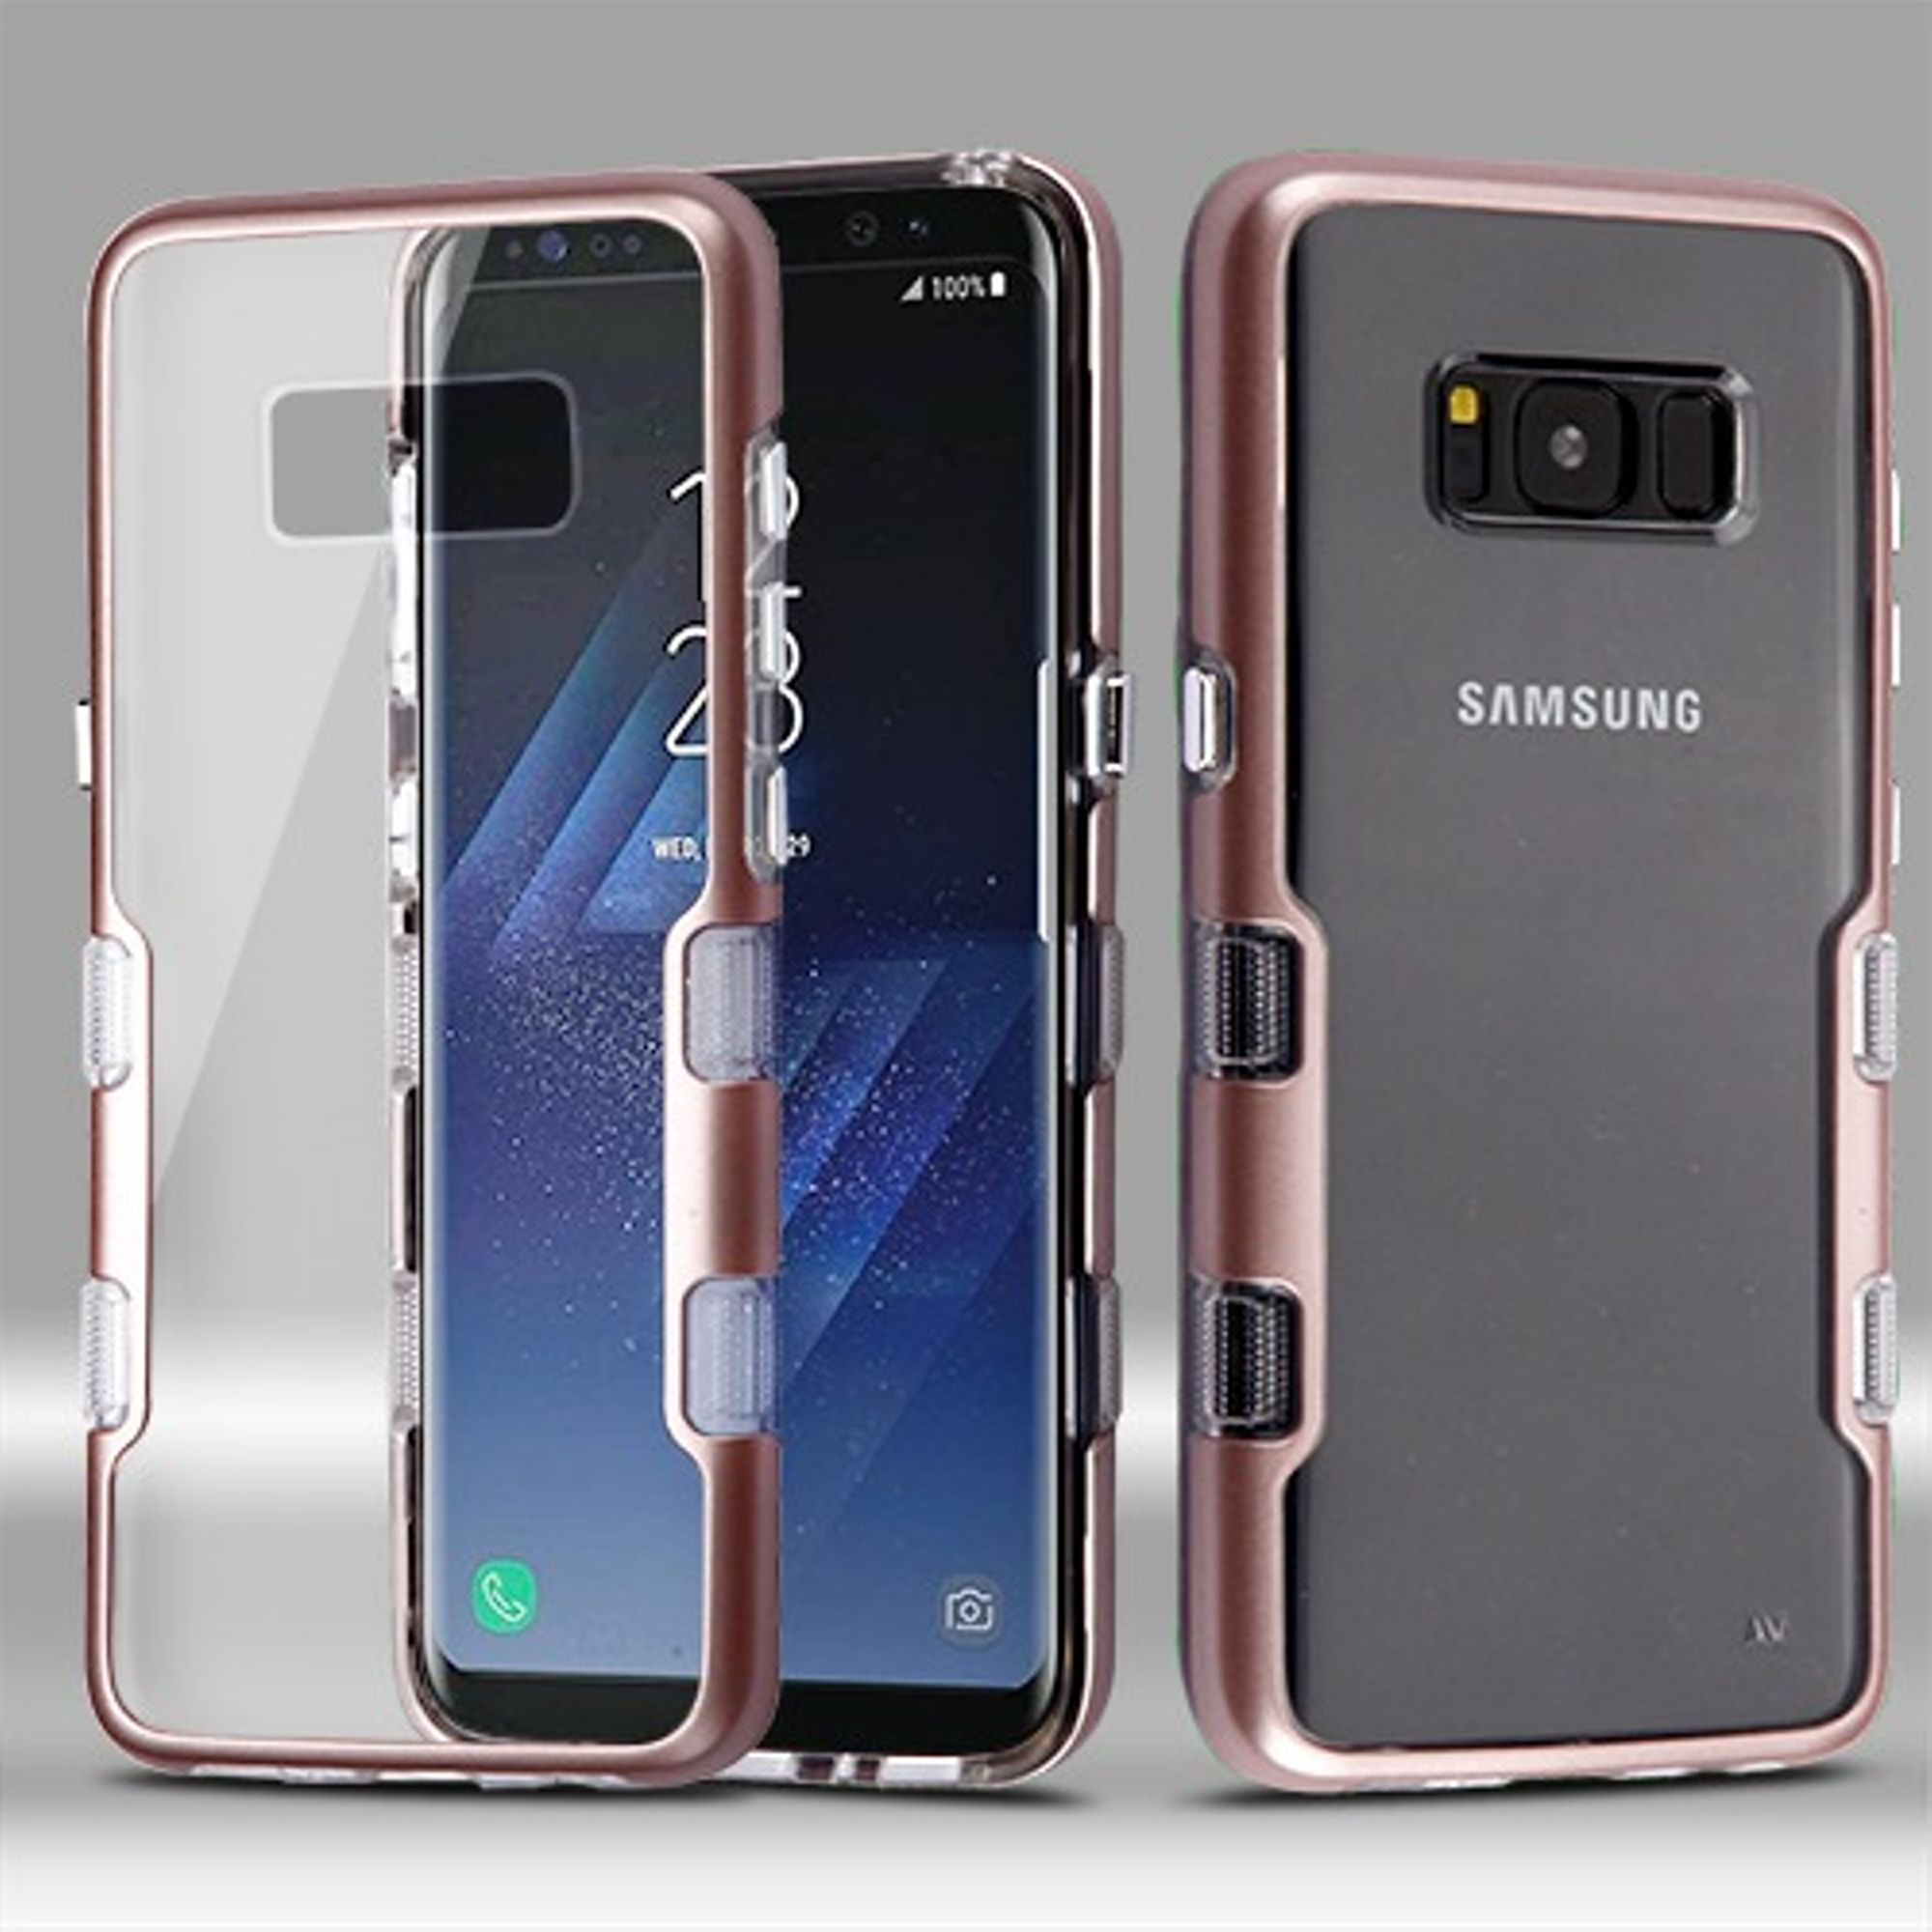 MyBat Transparent Clear TUFF Panoview Hybrid PC/TPU Case For Samsung Galaxy S8 - Rose Gold